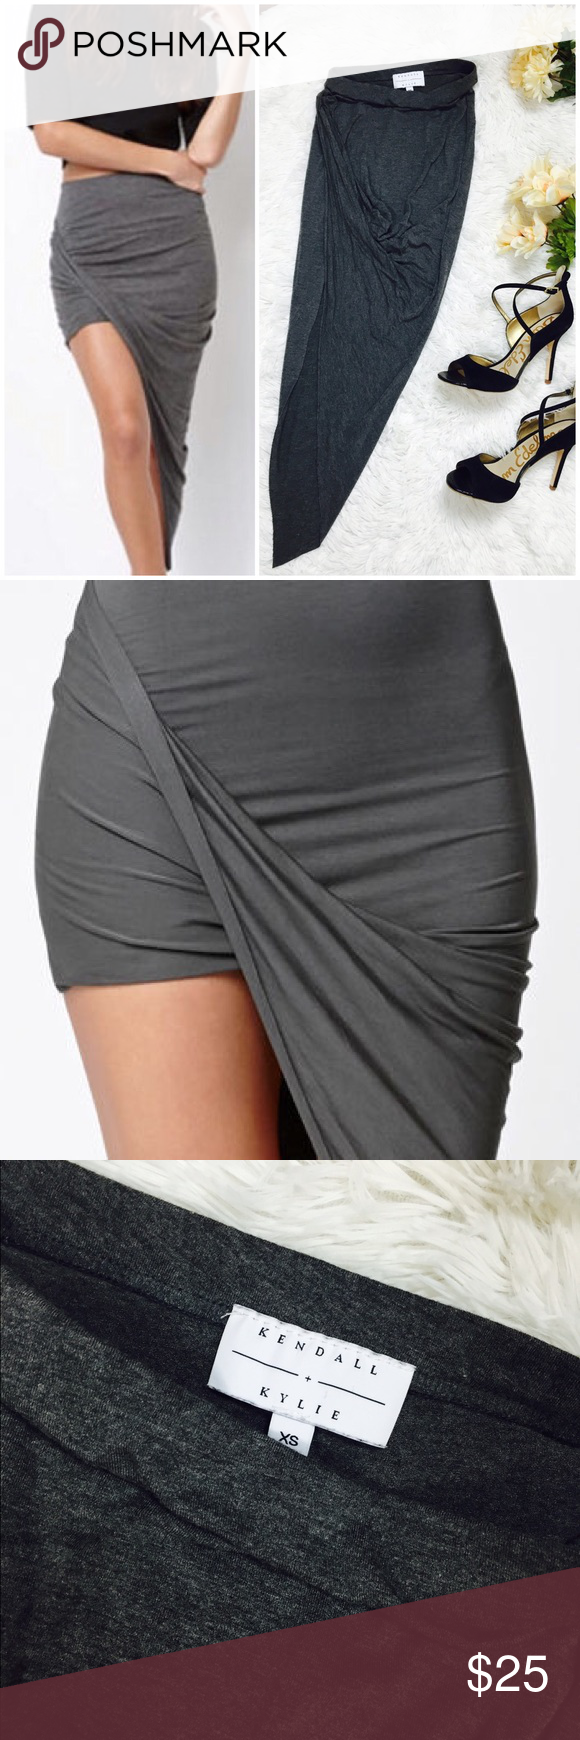 Grey Asymmetrical Draped Skirt Size XS Kendall + Kylie grey draped skirt. High thigh with drape on opposite side. Stretchy waist. 24-25 waist. Preowned in good condition. Kendall & Kylie Skirts